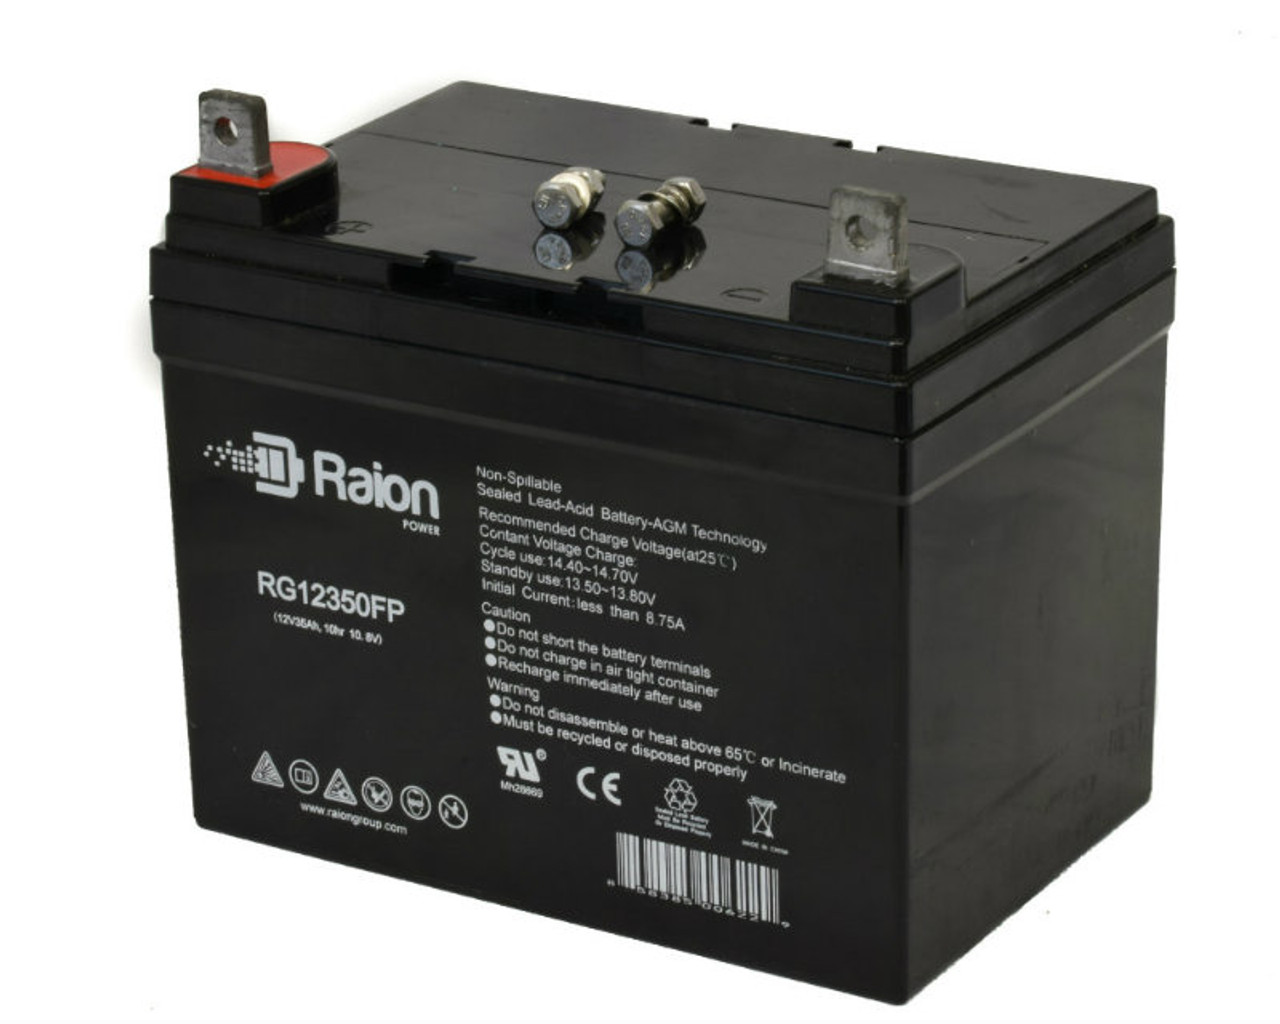 RG12350FP Sealed Lead Acid Battery Pack For Merits Pioneer 3 S131 Deluxe U1 Mobility Scooter